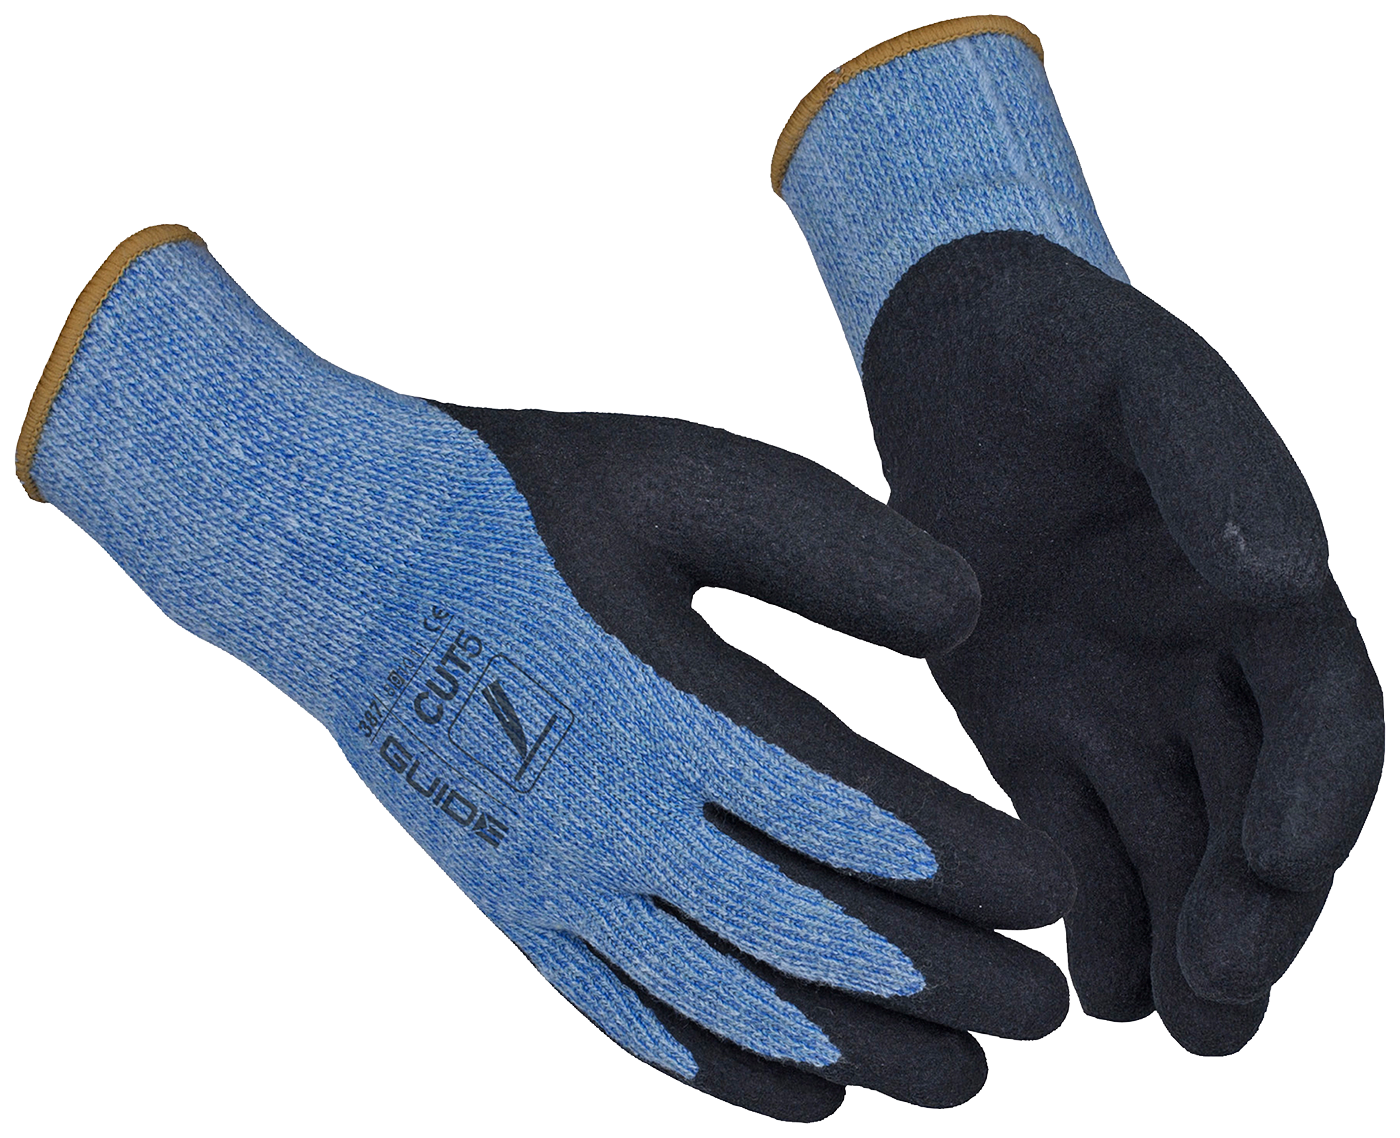 Cut Protection Glove GUIDE 387W